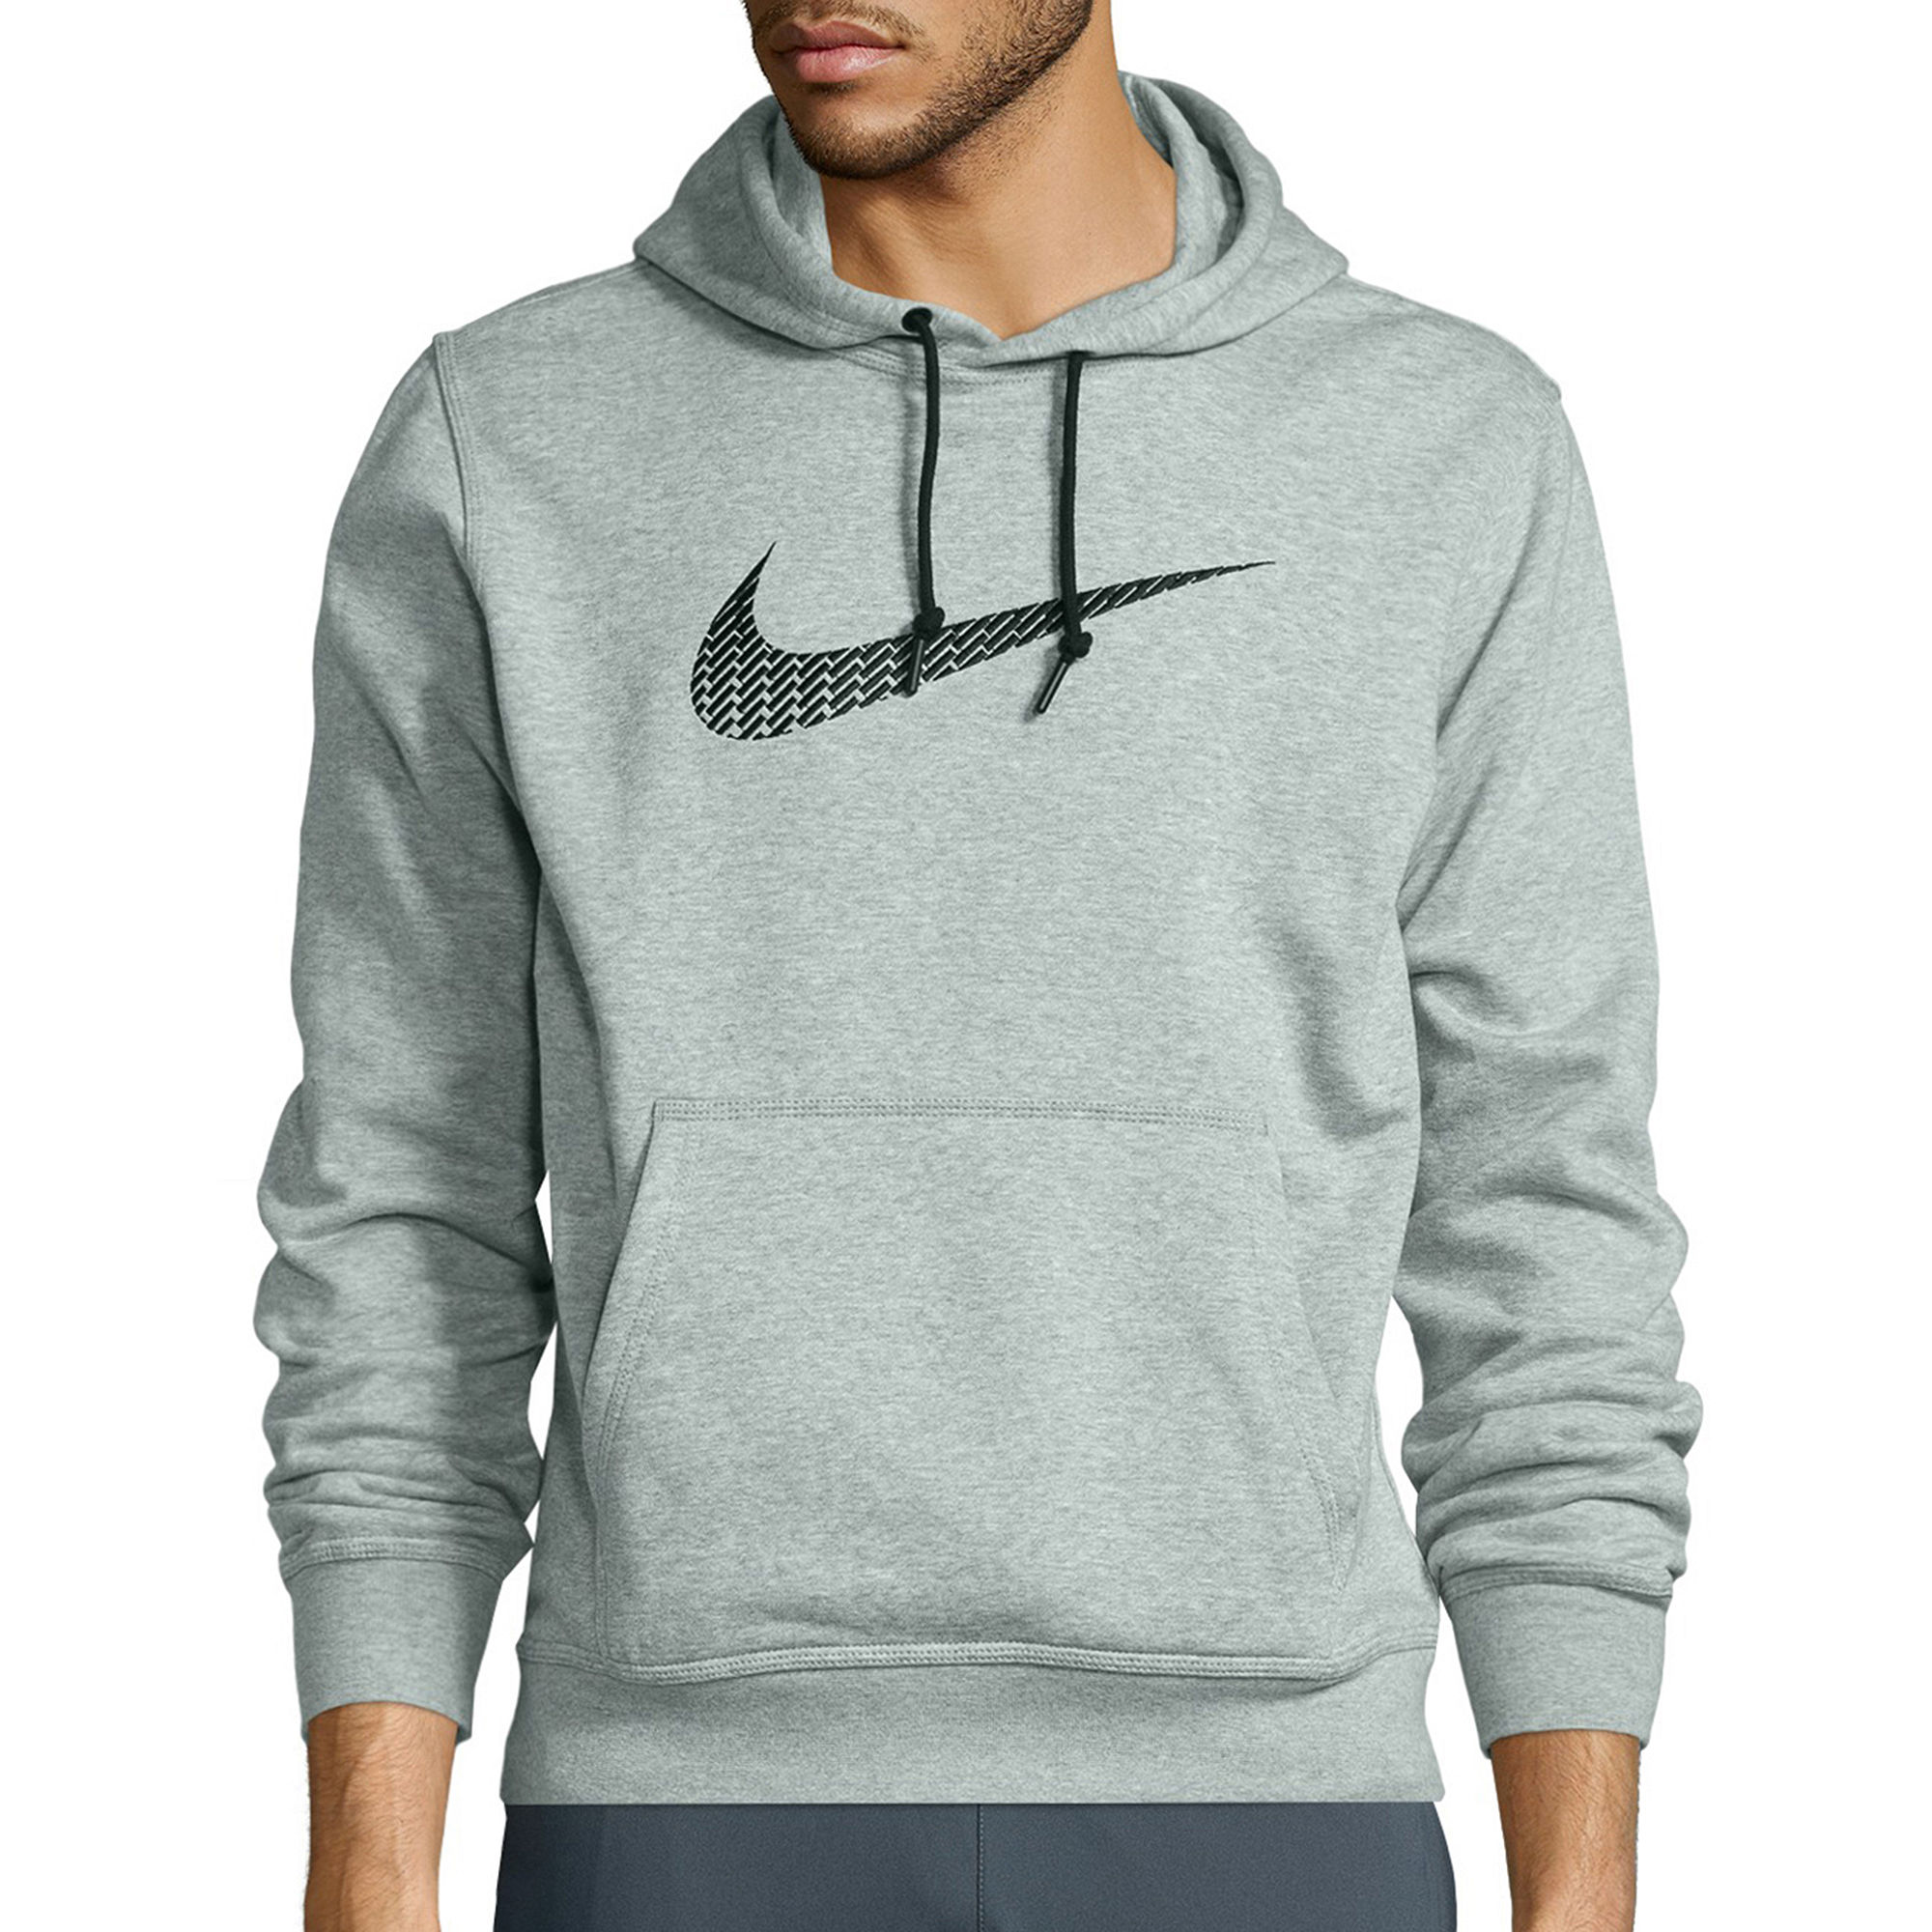 cb355333bc2d ... UPC 885179687883 product image for Nike Club Swoosh Fleece Pullover  Hoodie